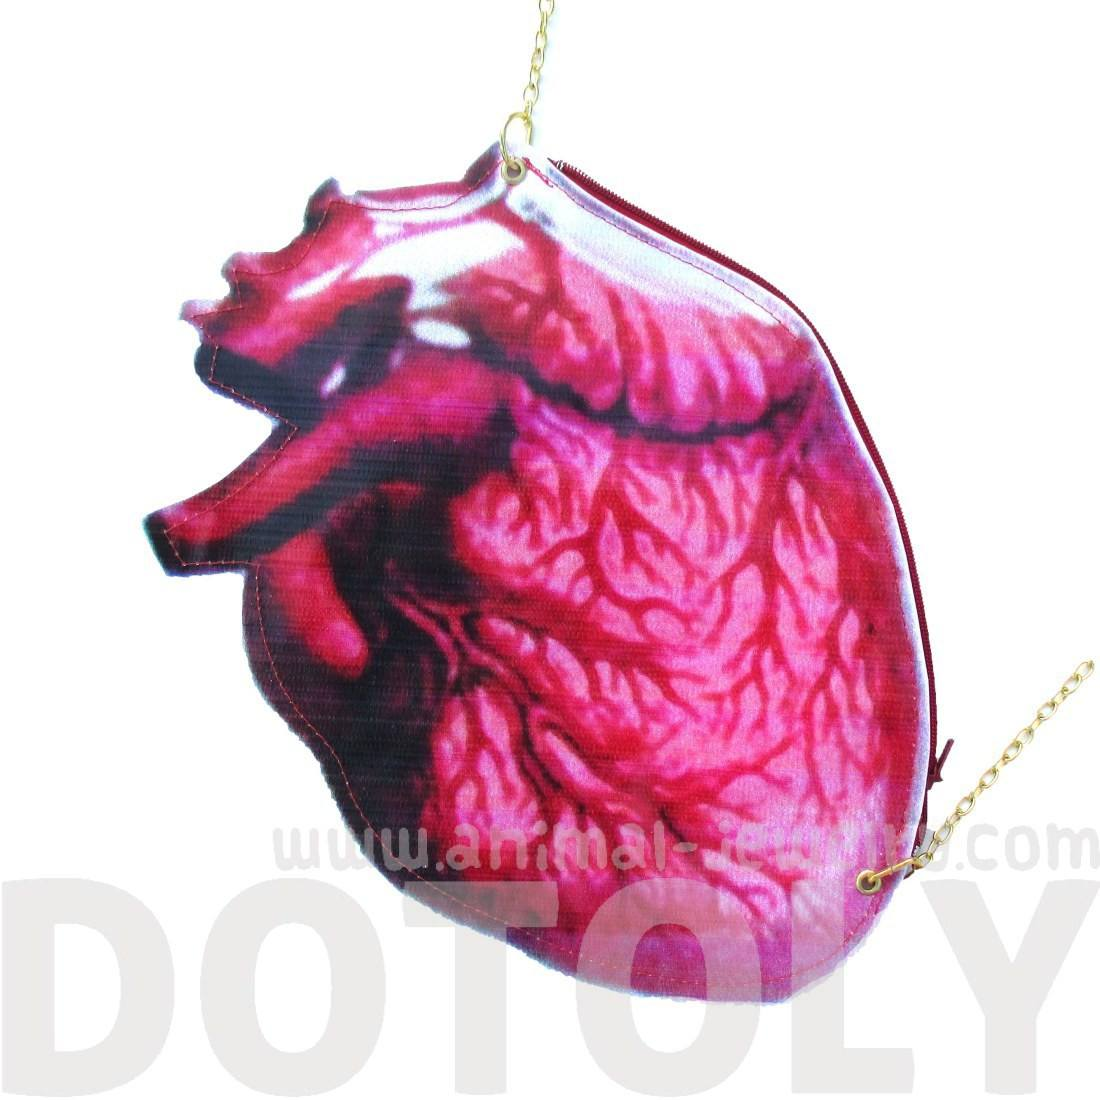 Realistic Human Heart Organ Anatomy Shaped Vinyl X Body Shoulder Bag